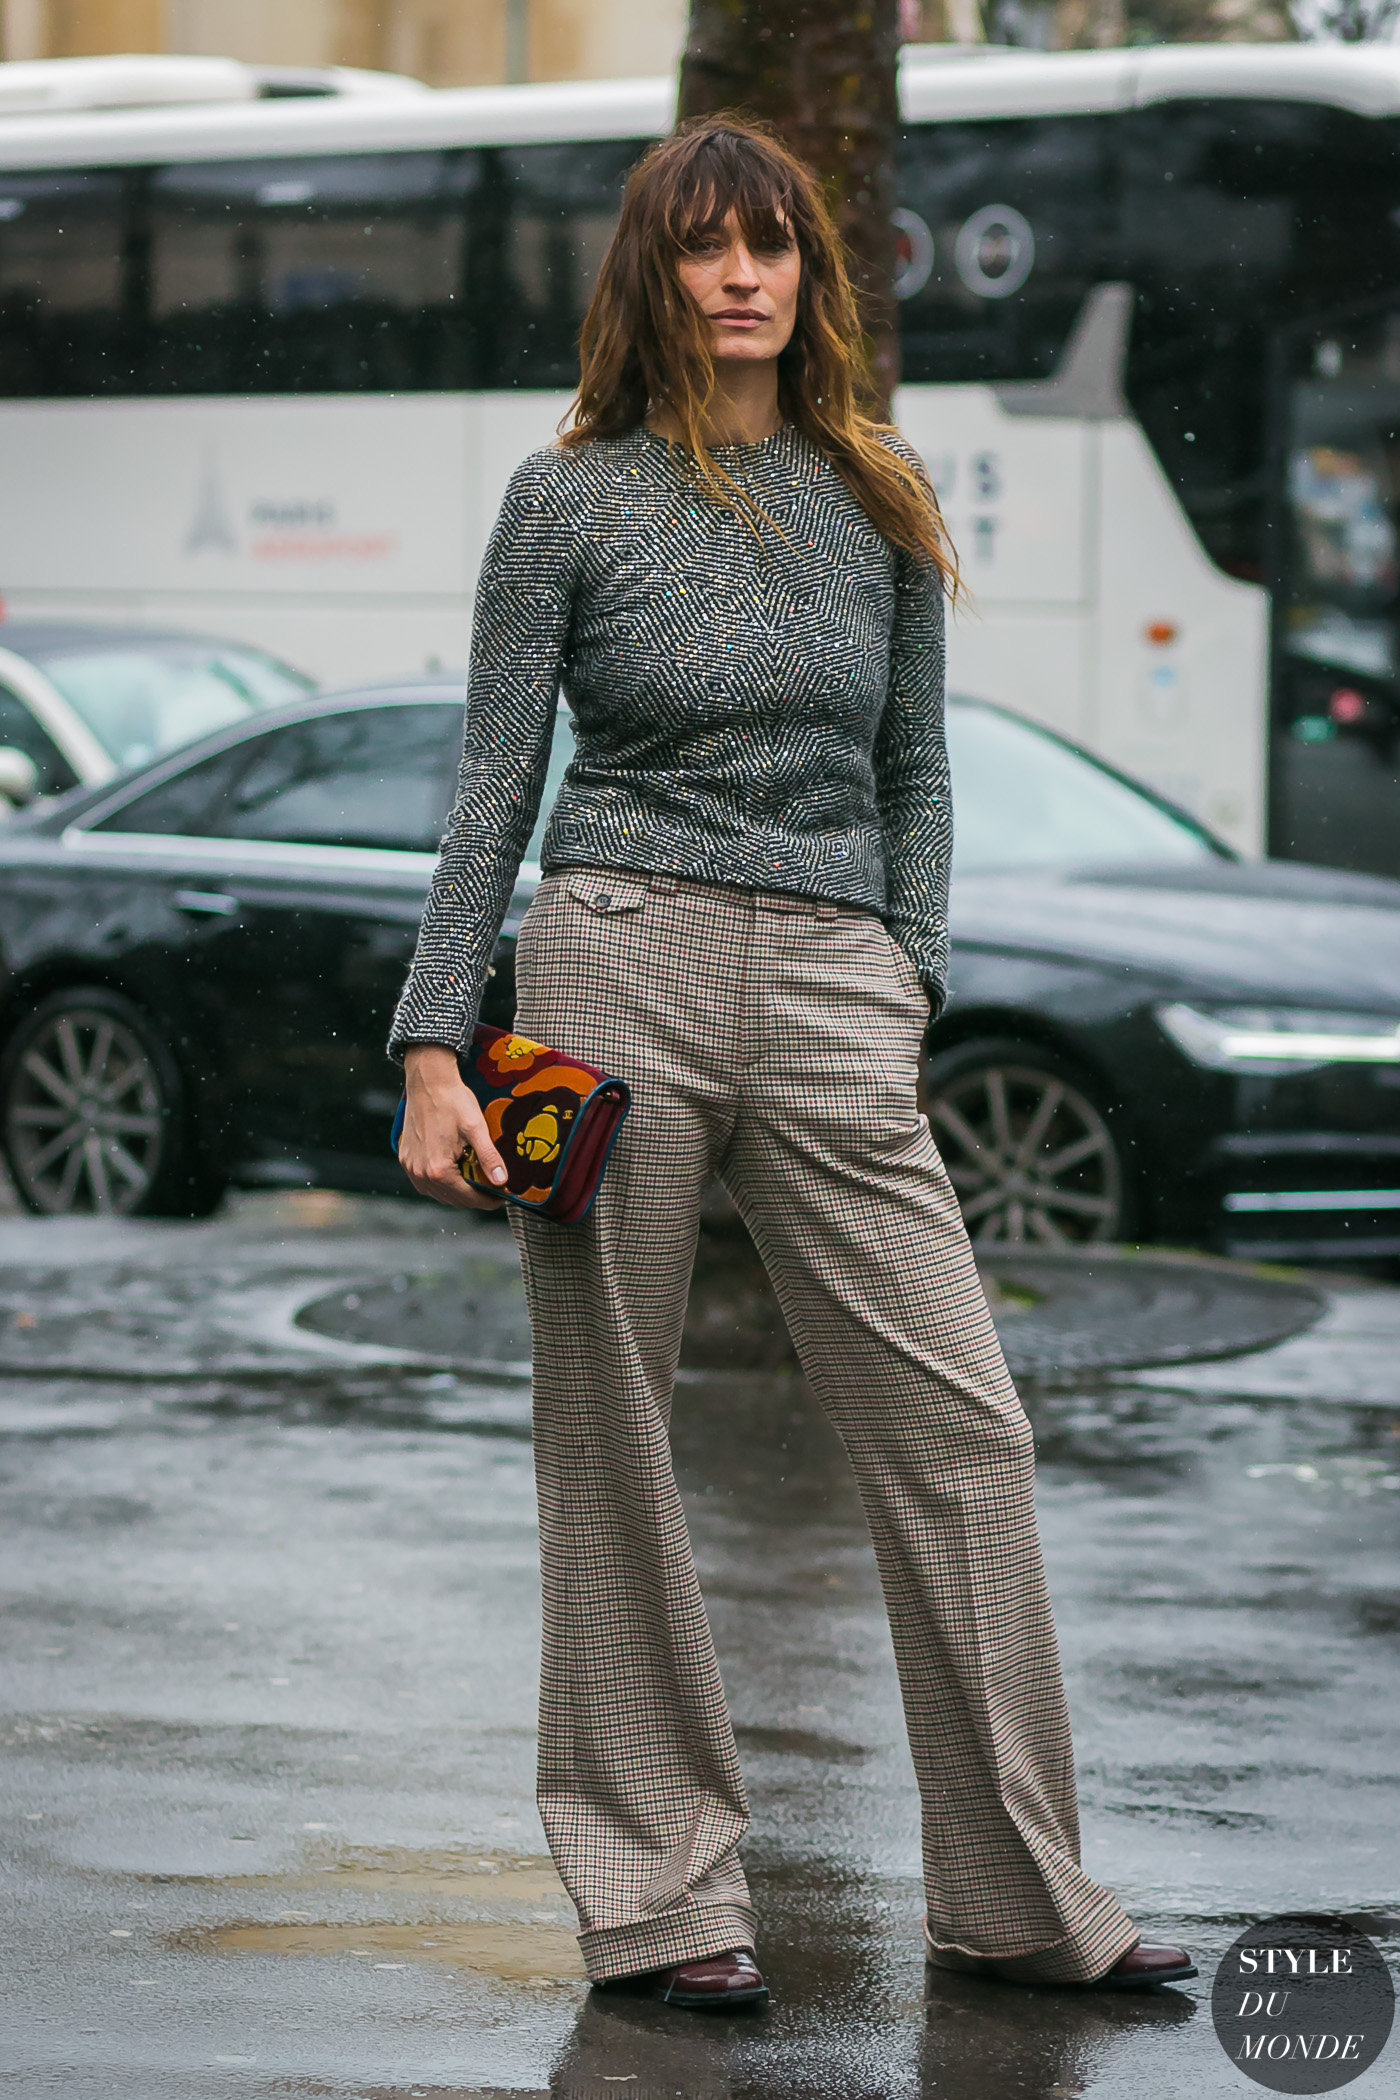 Caroline de Maigret by STYLEDUMONDE Street Style Fashion Photography